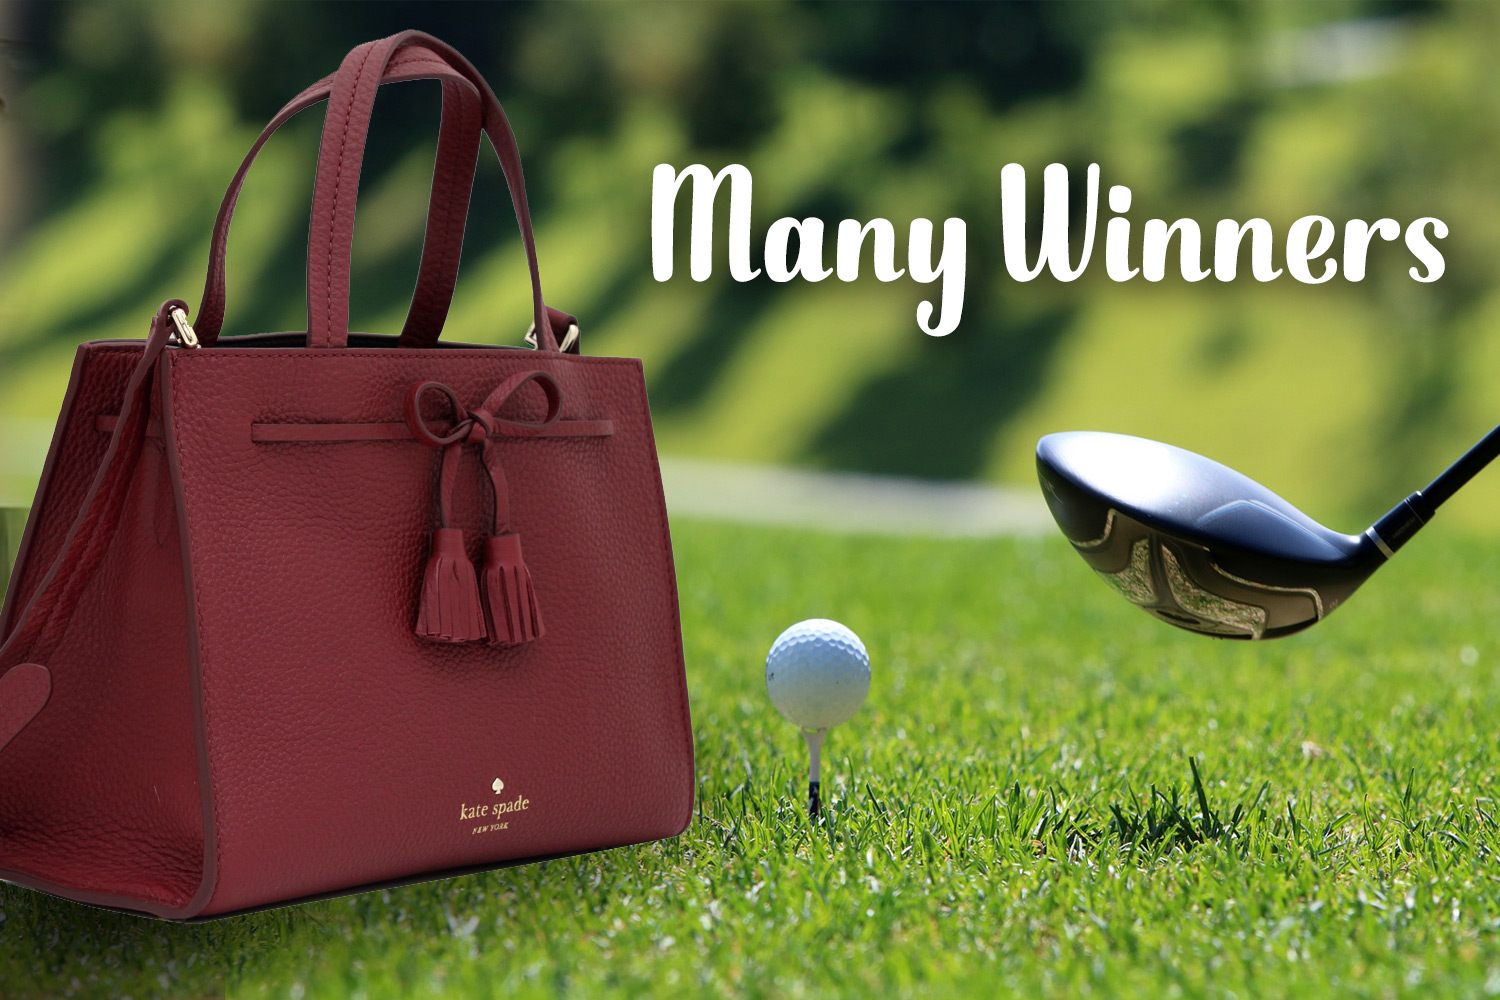 Winners Bags and Golf